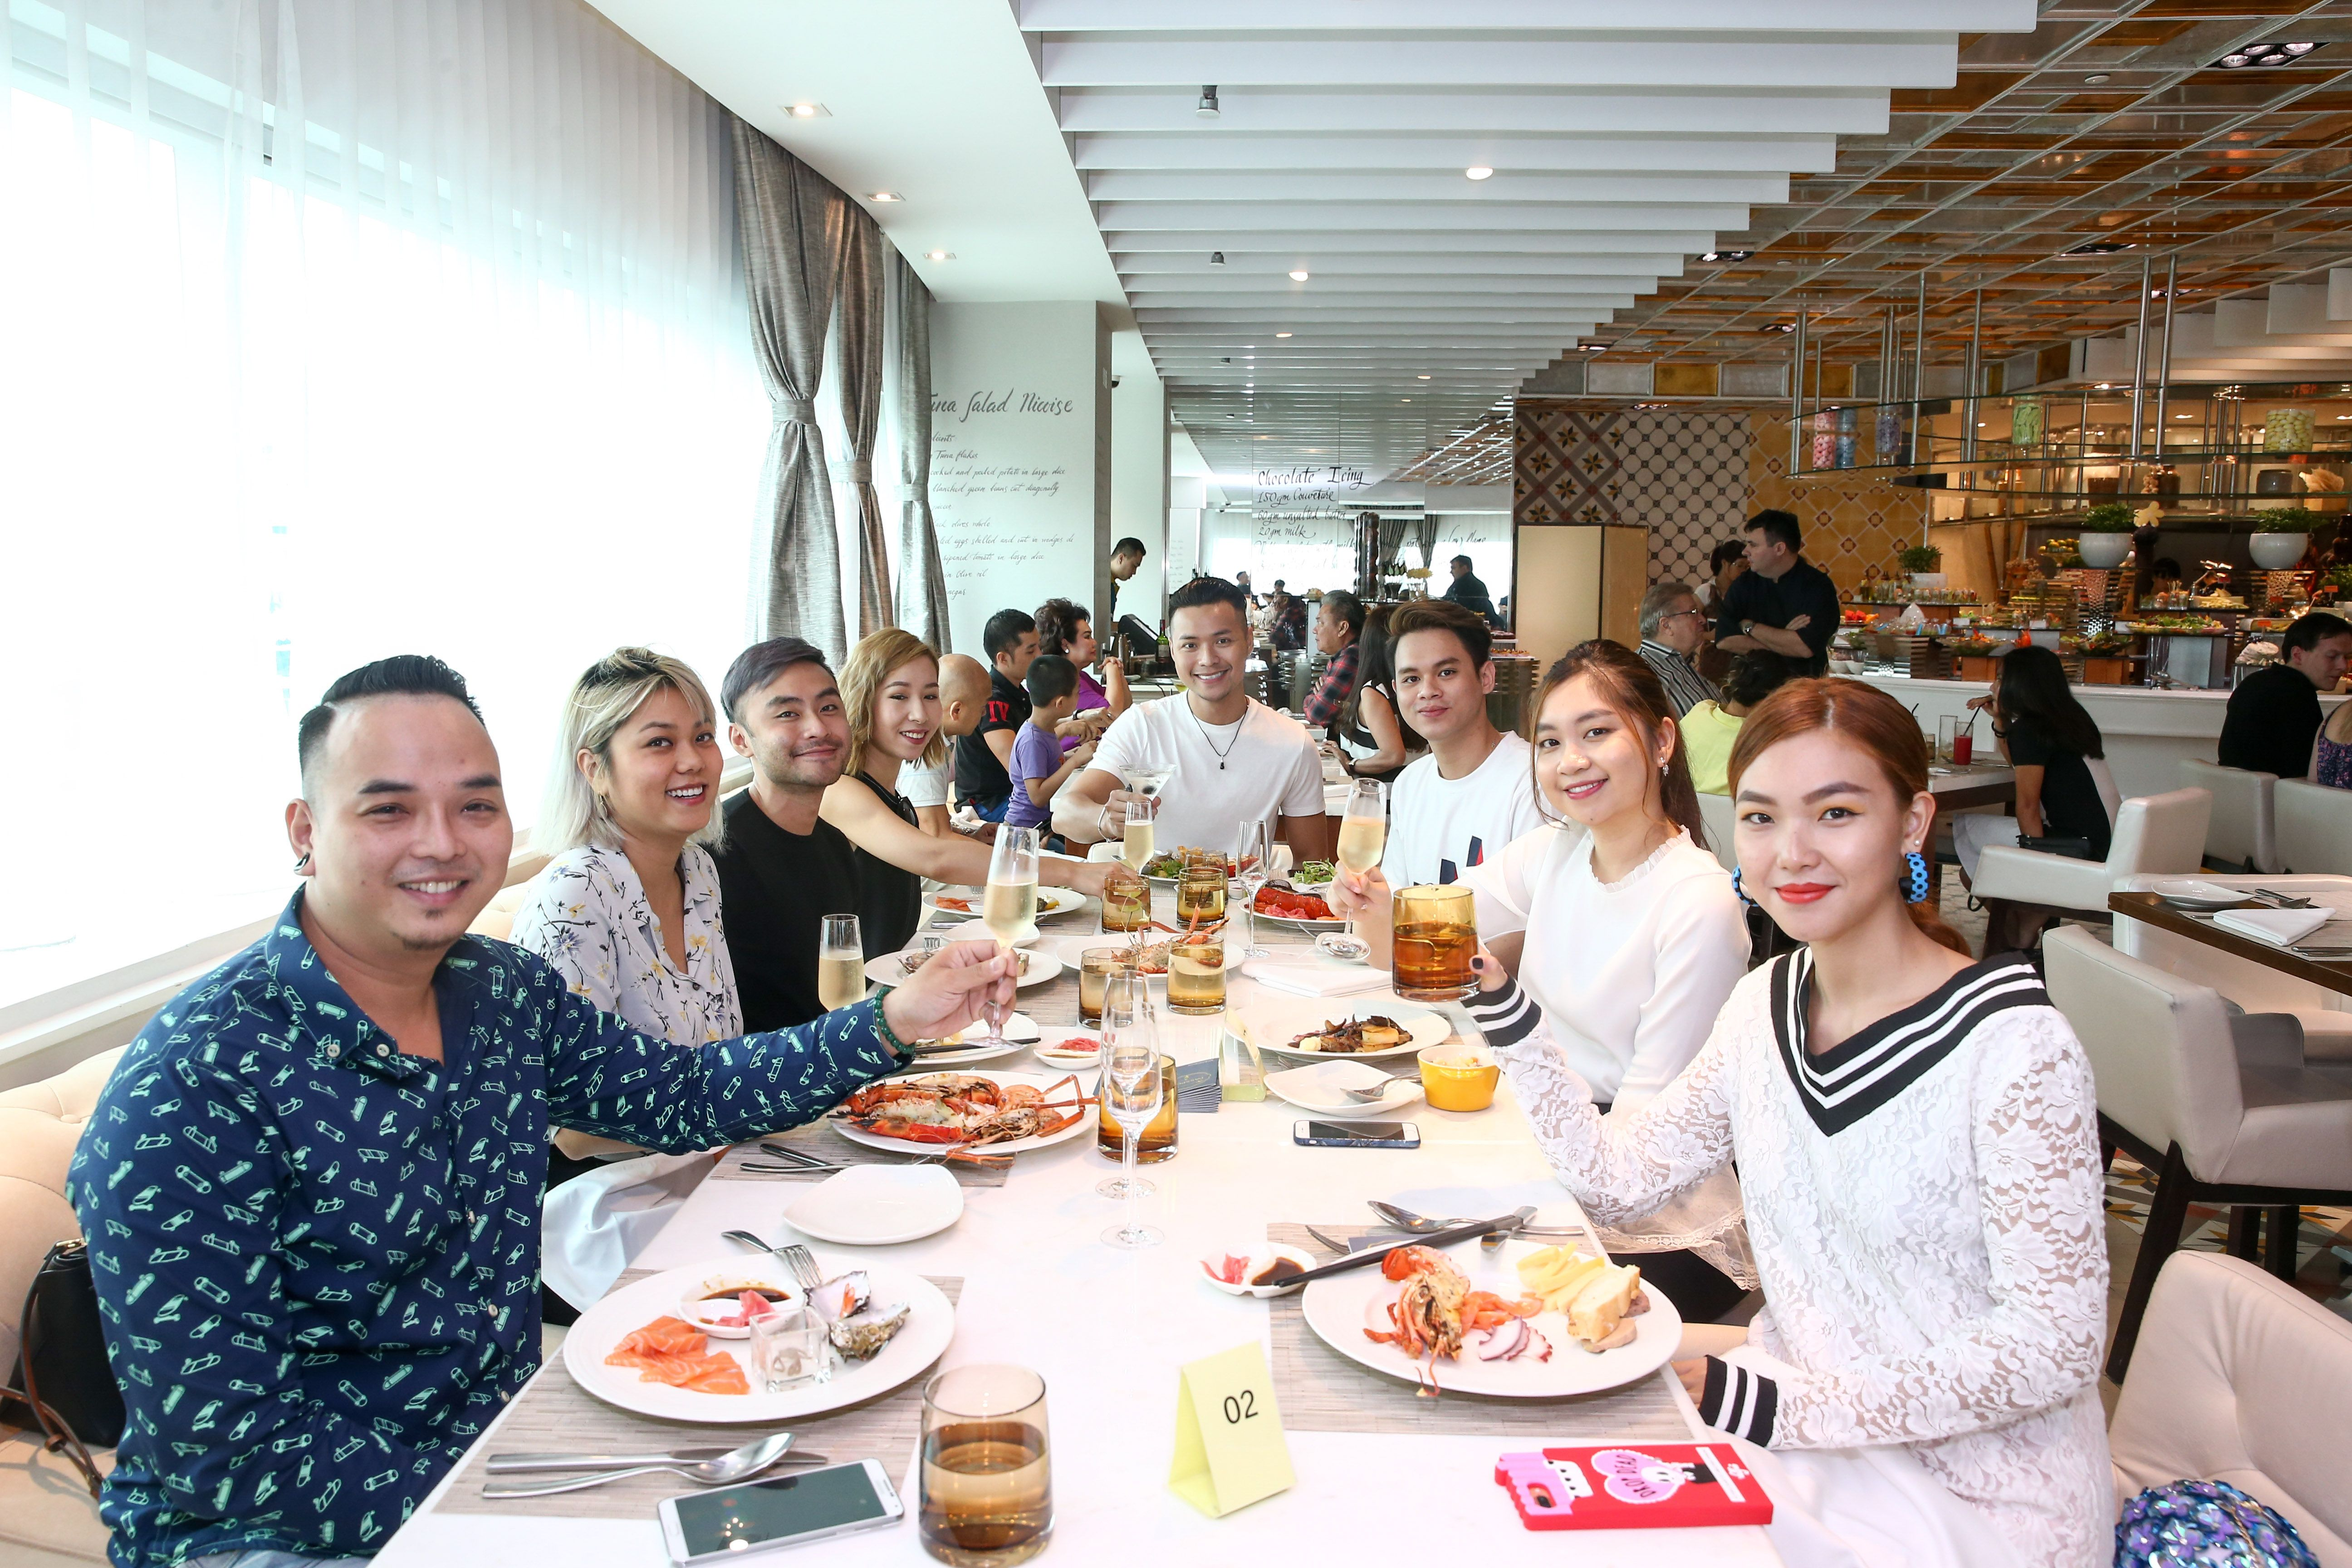 Sunday Discovery Brunch at Latest Recipe and Bamboo Chic Le Meridien Saigon Kaylee Hwang, Dung Ha Hakoota Xone FM, Dustin Nguyen MTV, An Uong VietNam